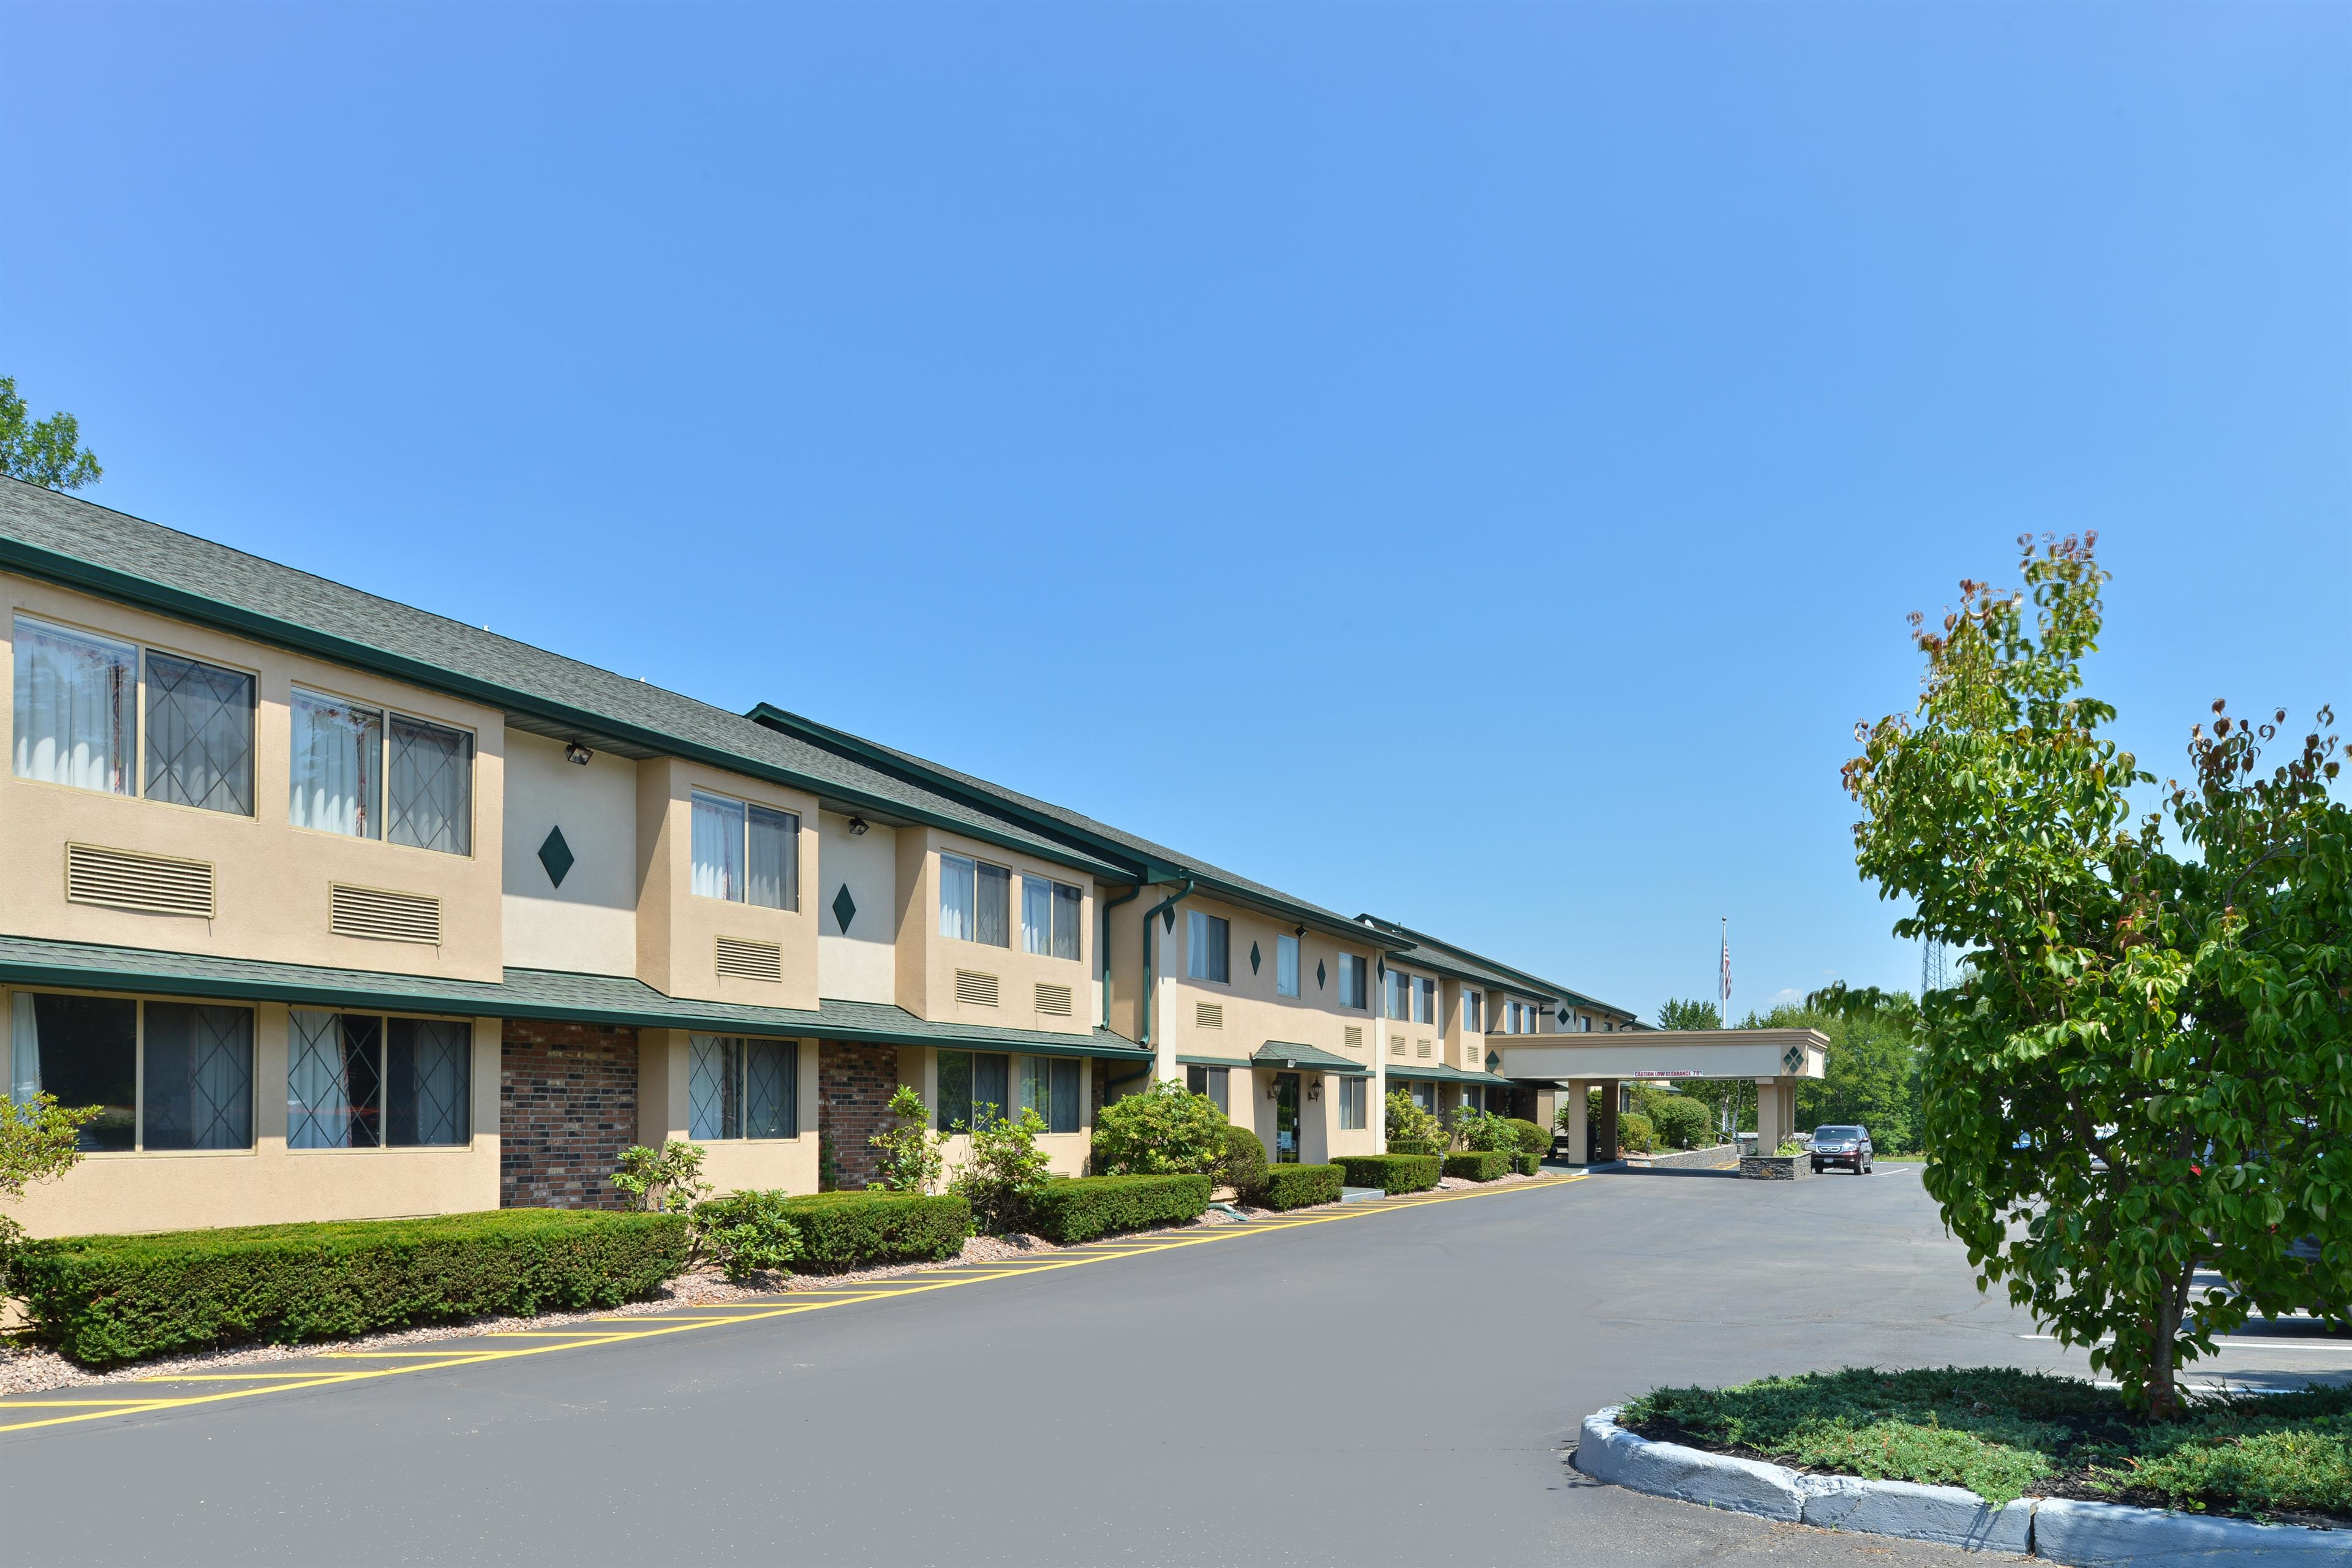 Americas Best Value Inn - New Paltz image 2